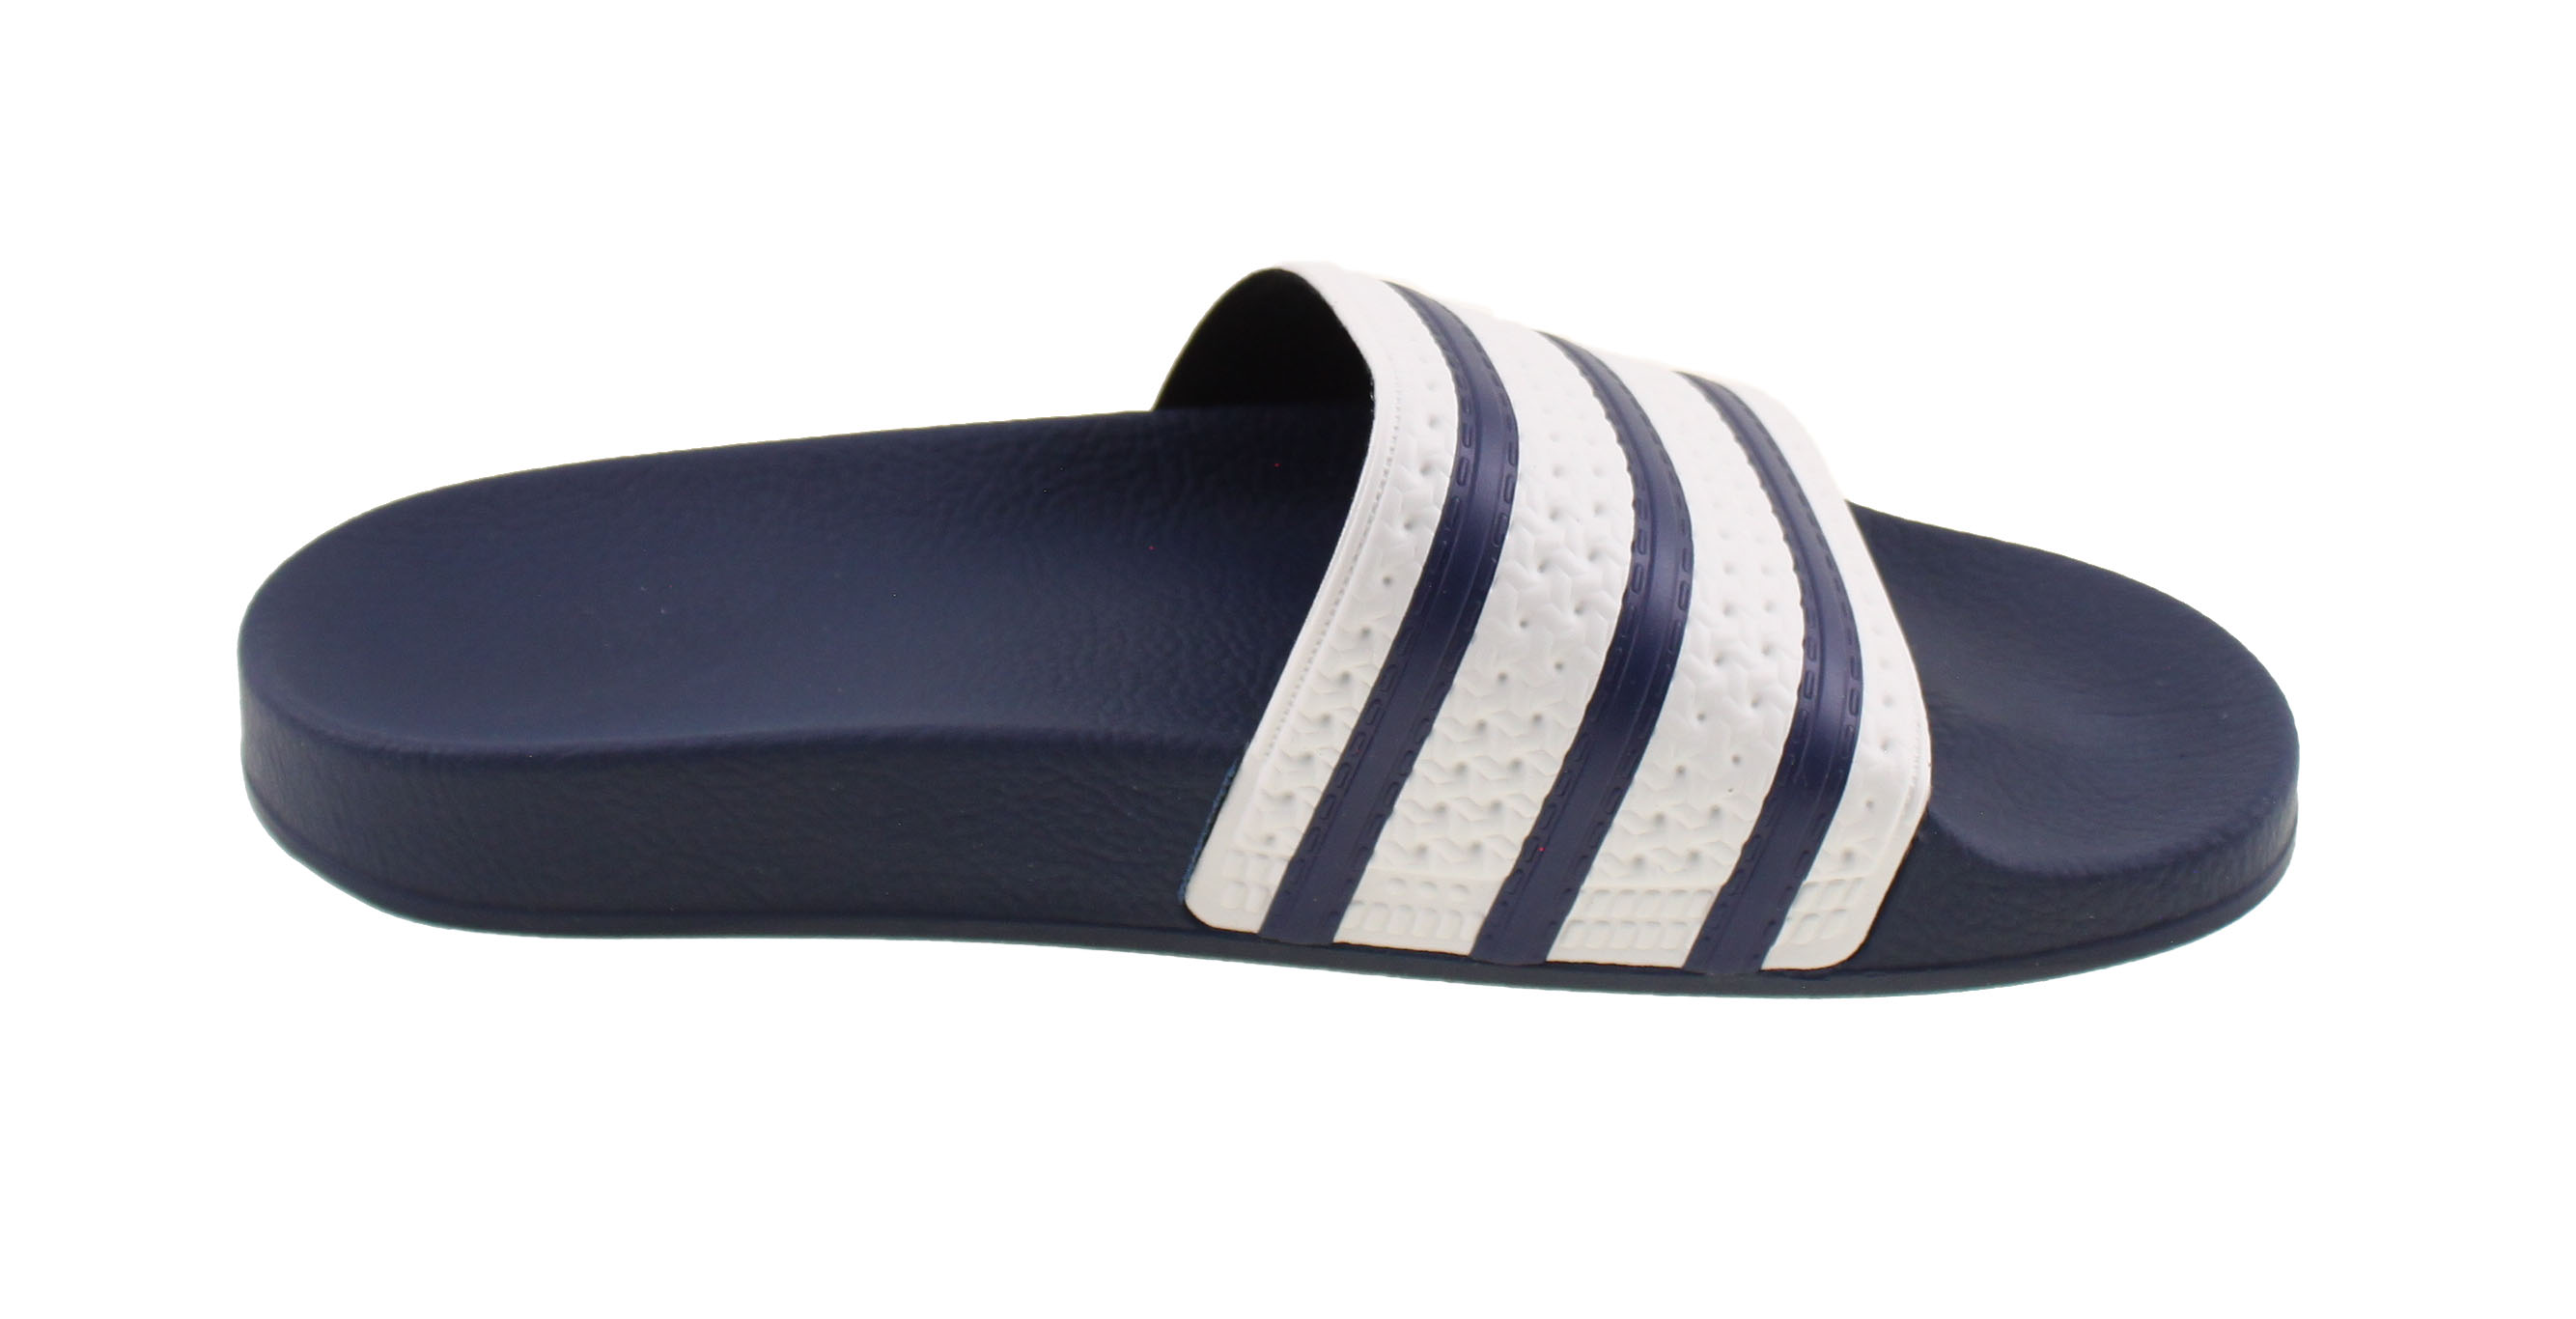 separation shoes 87b47 43cd8 Adidas Adilette Badslippers. G16220. Product afbeelding Product afbeelding  ...